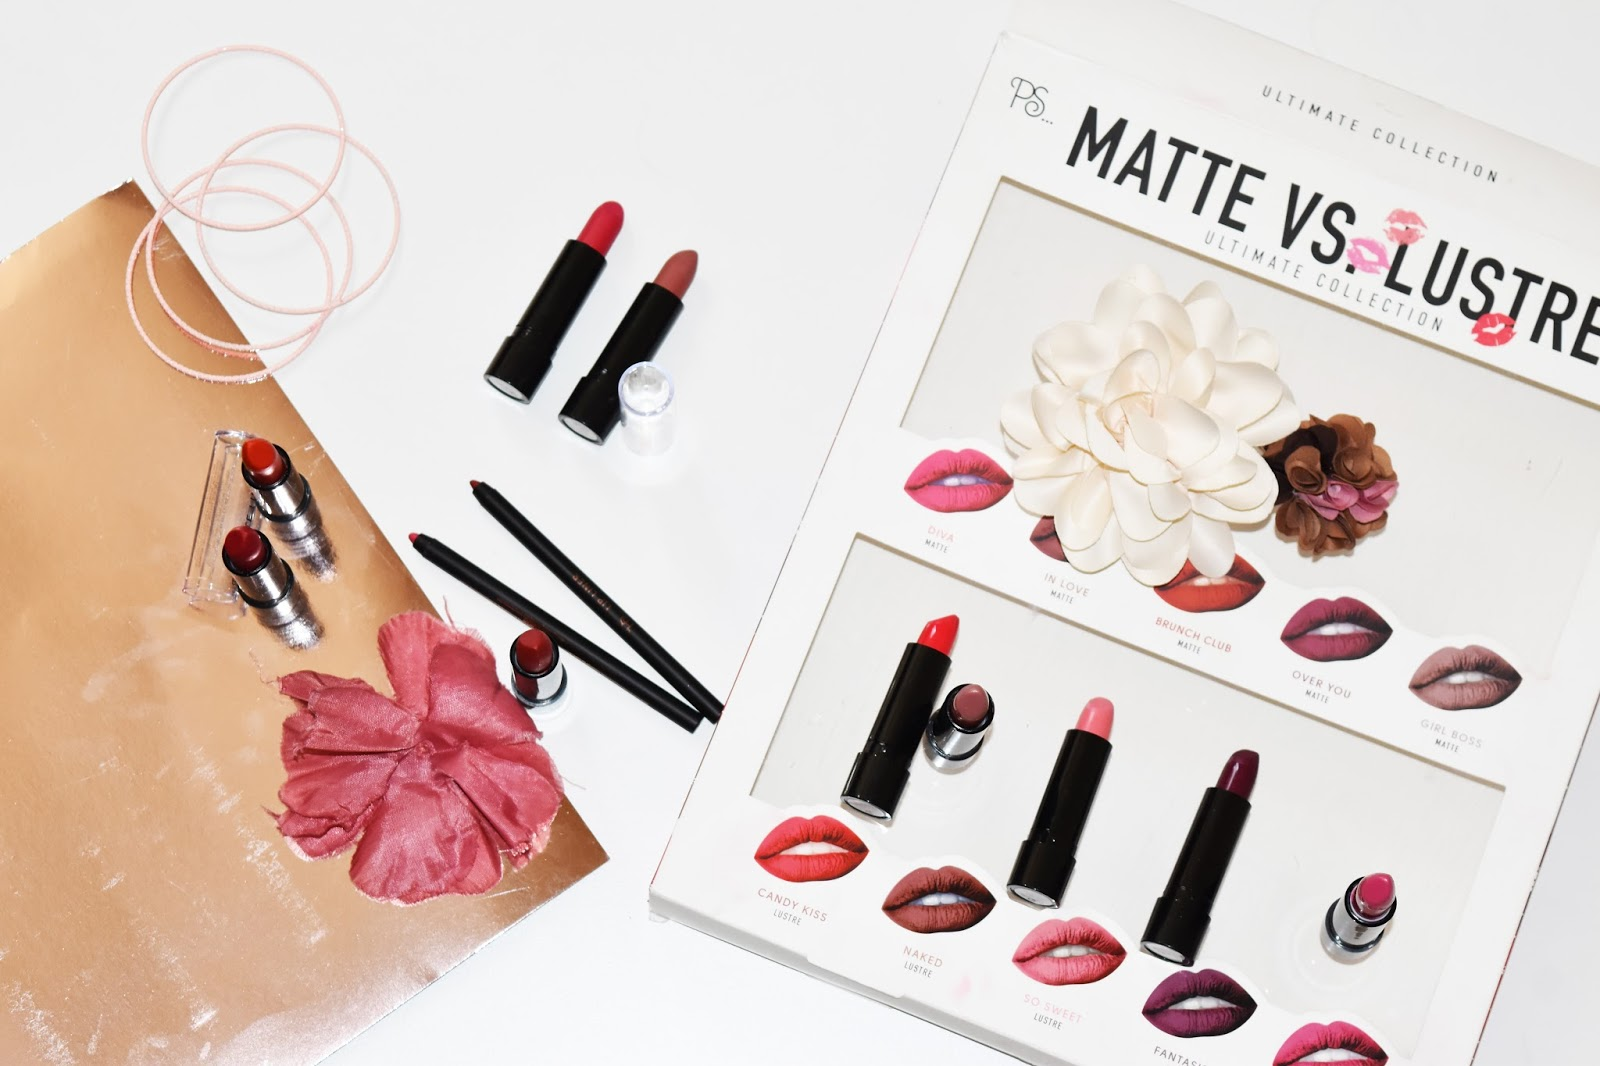 Matte vs lustre, ultimate colection PRIMARK BEAUTY